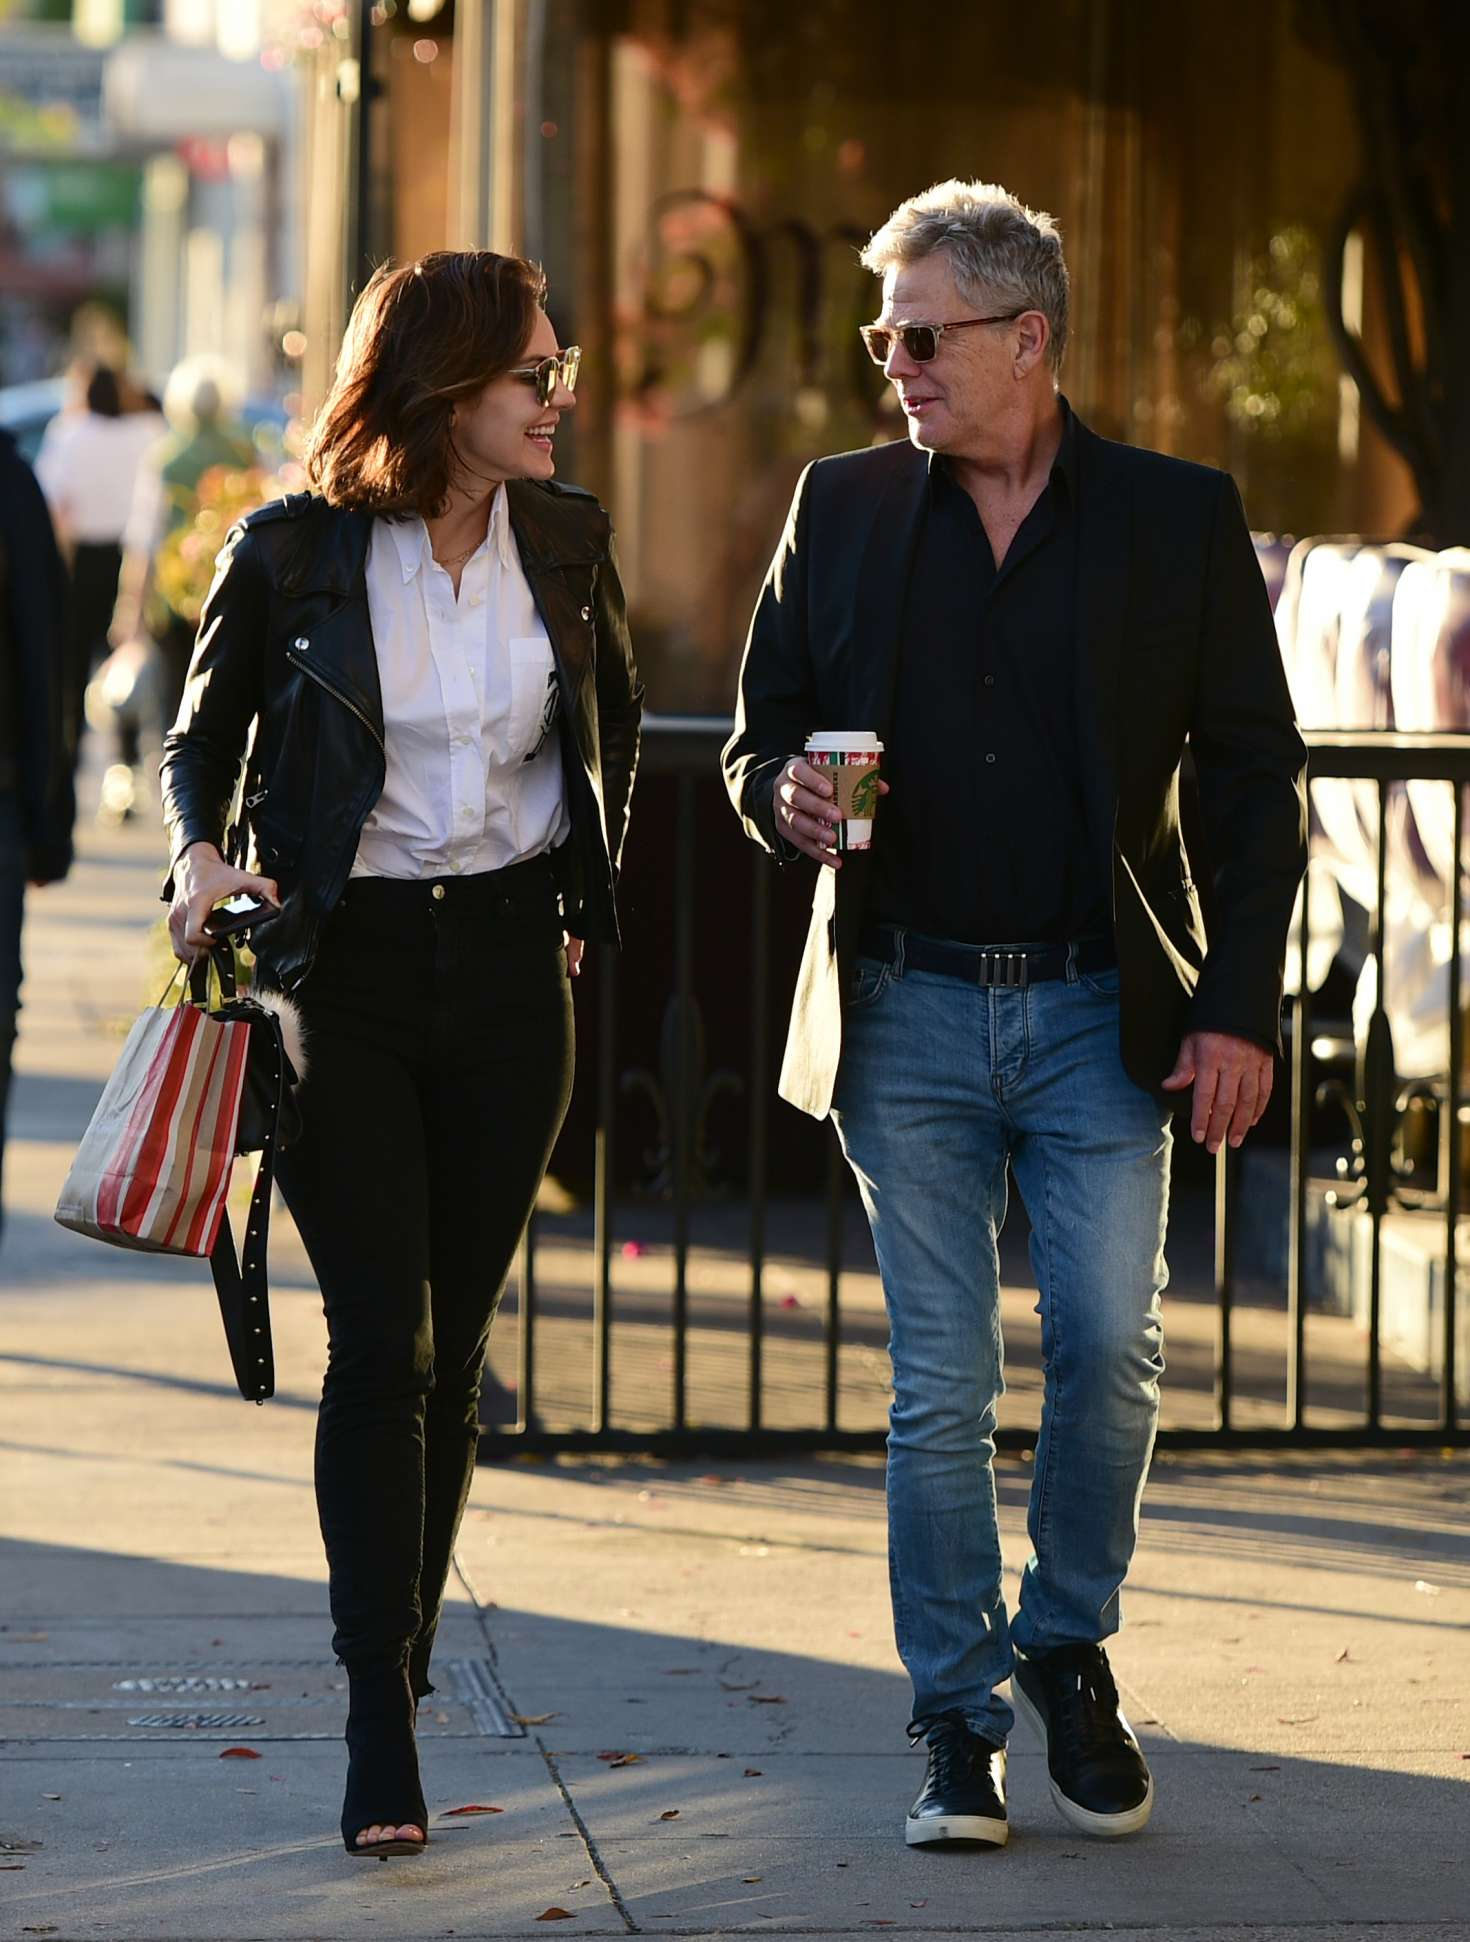 Katharine McPhee 2018 : Katharine McPhee and David Foster: Shopping in Los Angeles -05